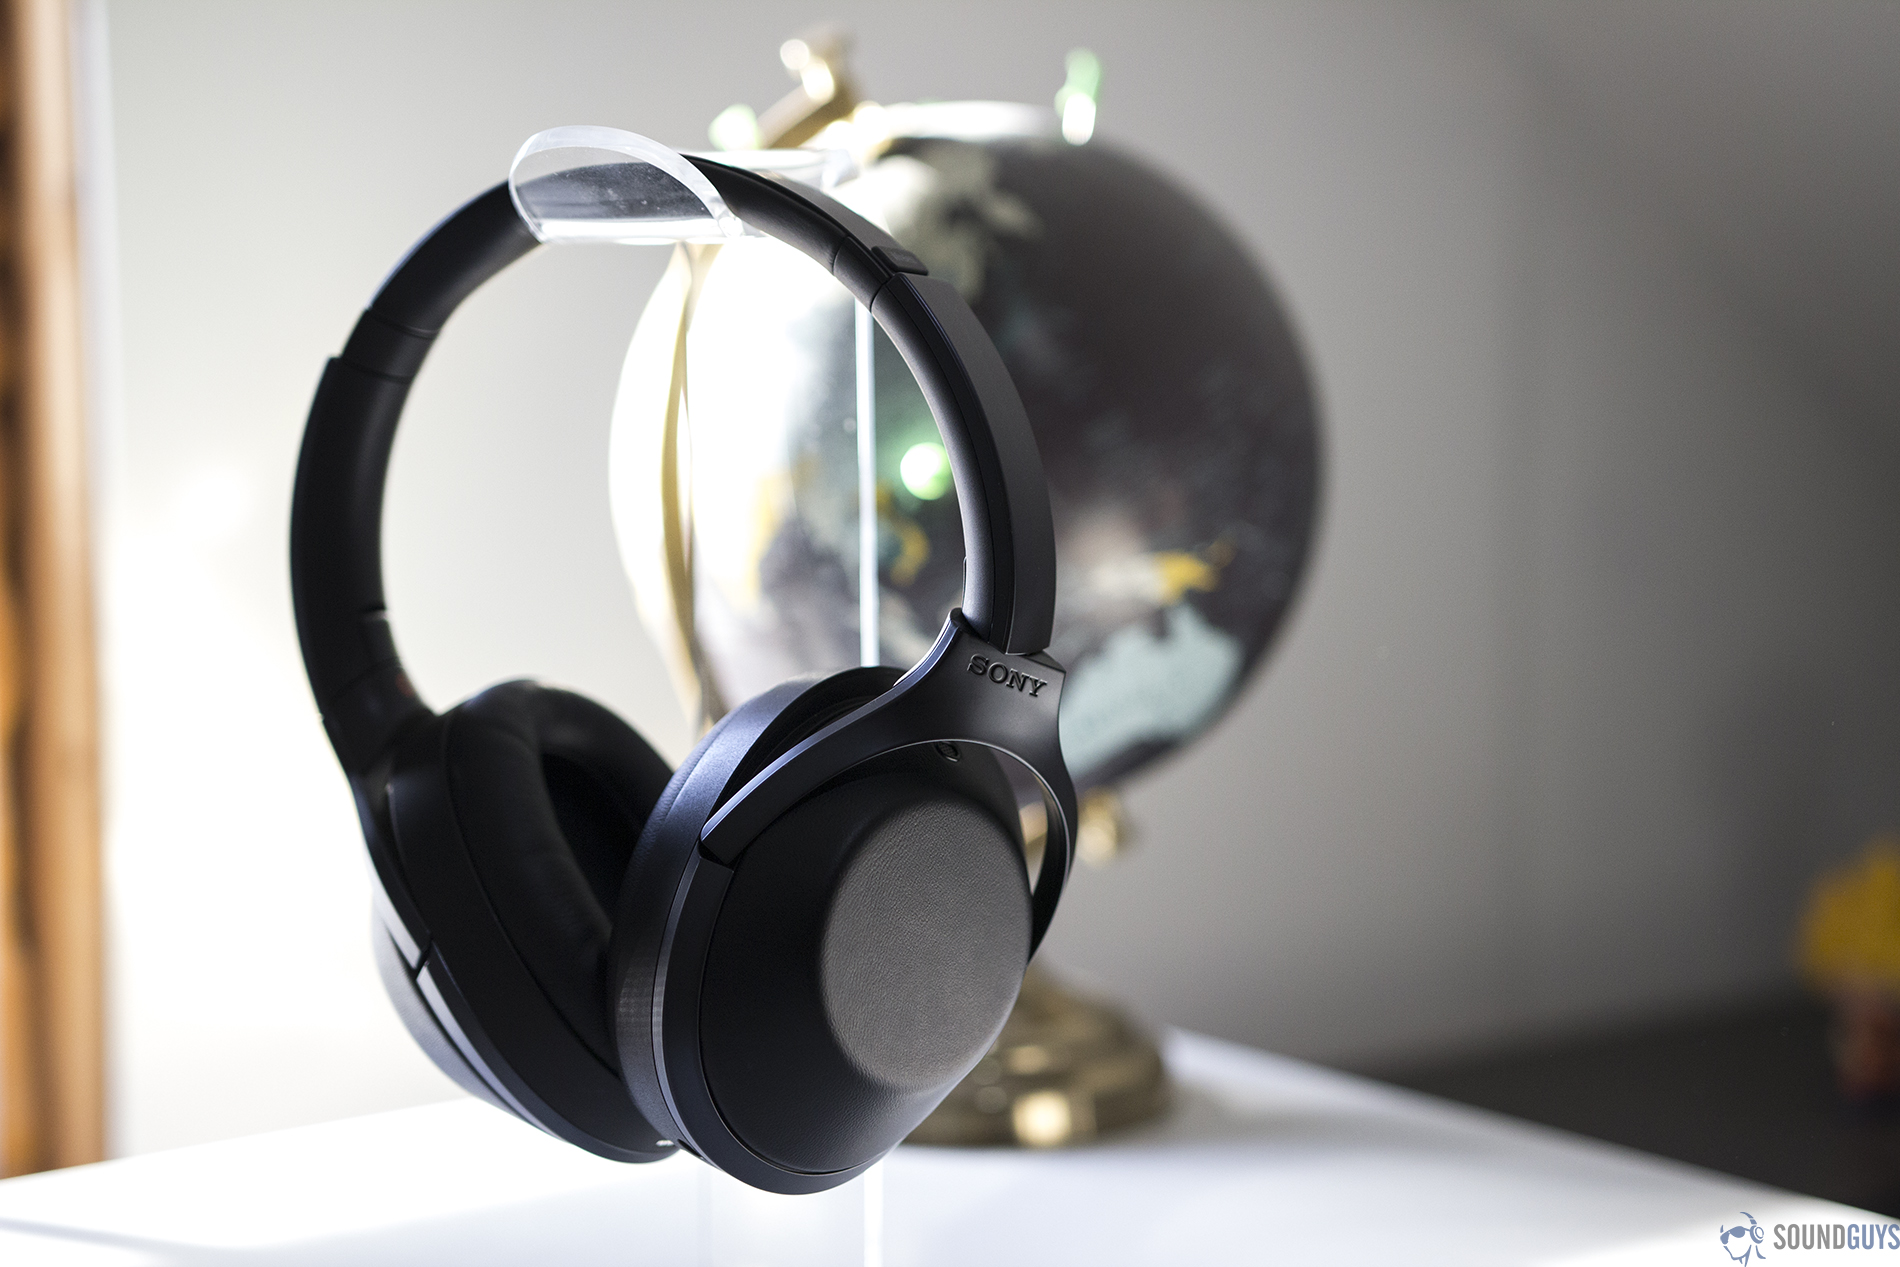 Sony Mdr 1000x Review Soundguys Headphone Last Years Winner The Can Be Found At A Steep Discountand Its Still Great